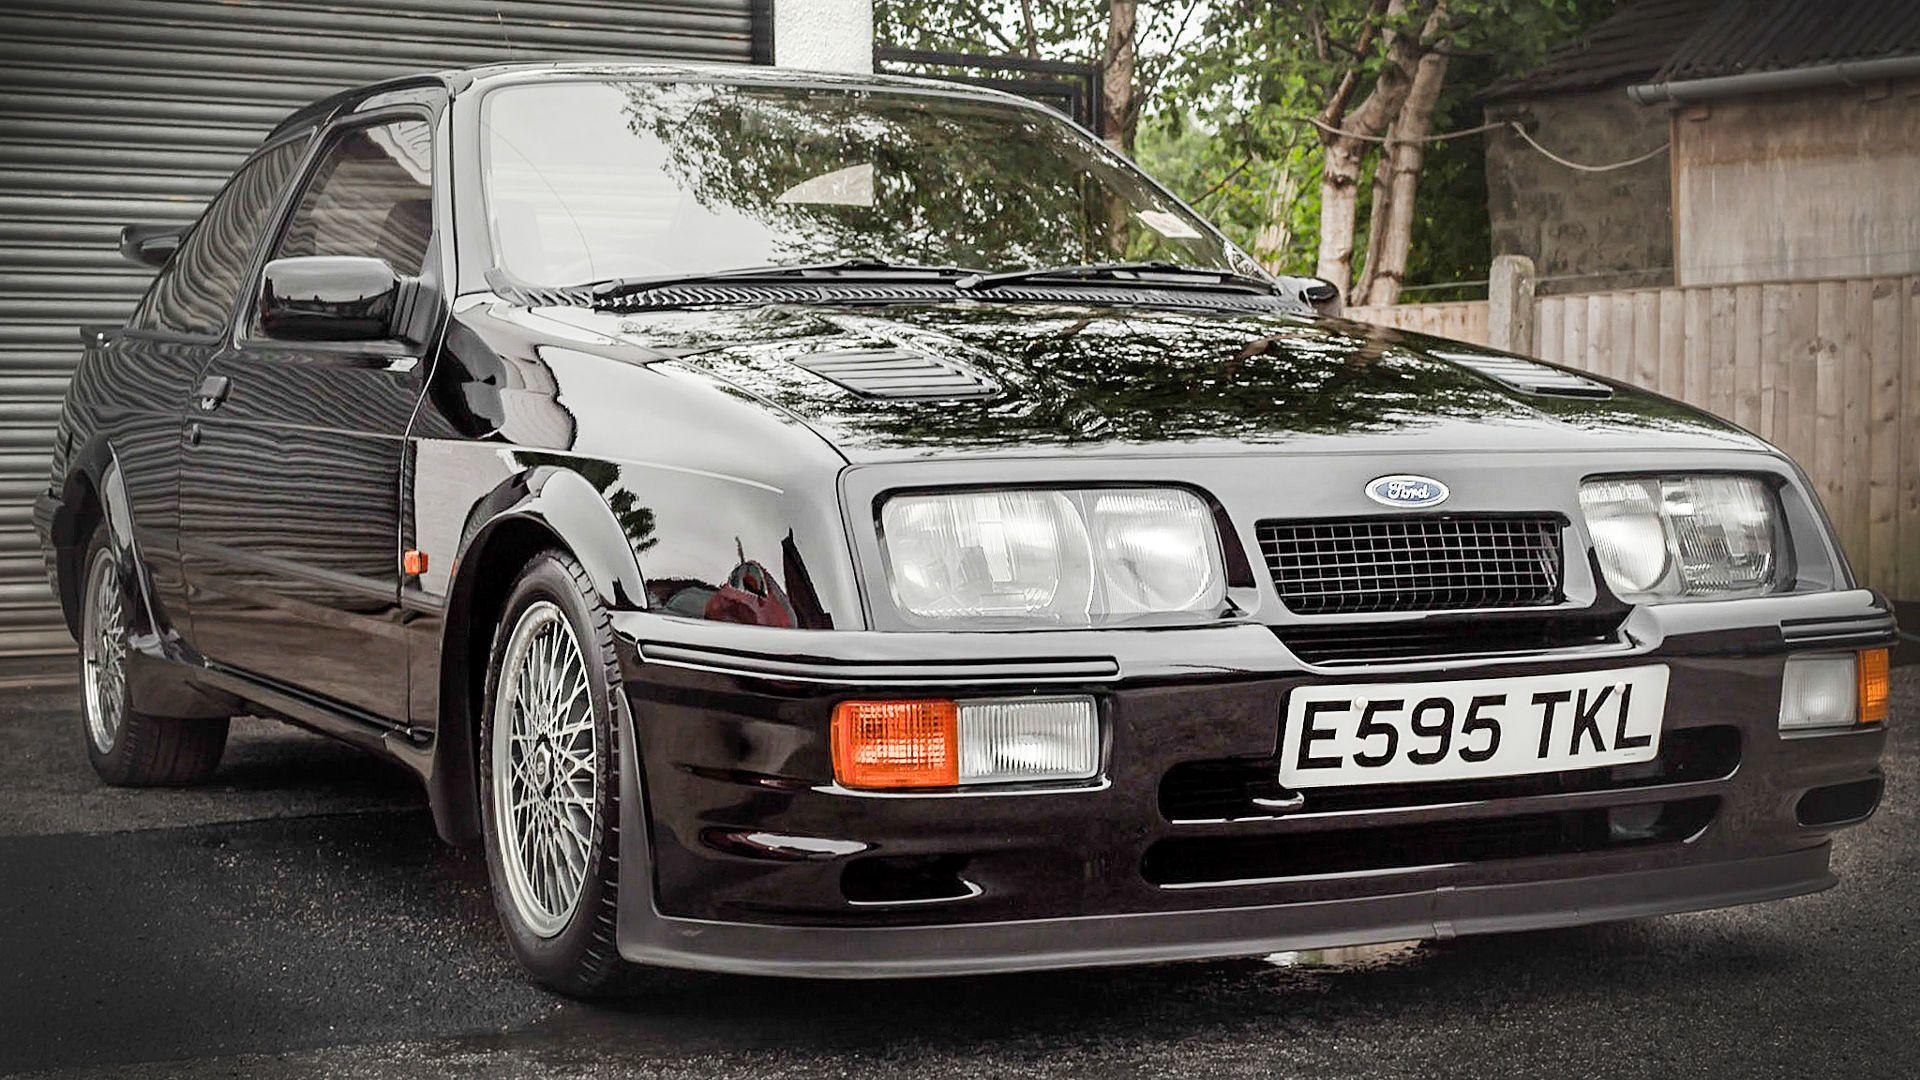 Meet The Worlds Most Expensive Sierra Cosworth Top Gear